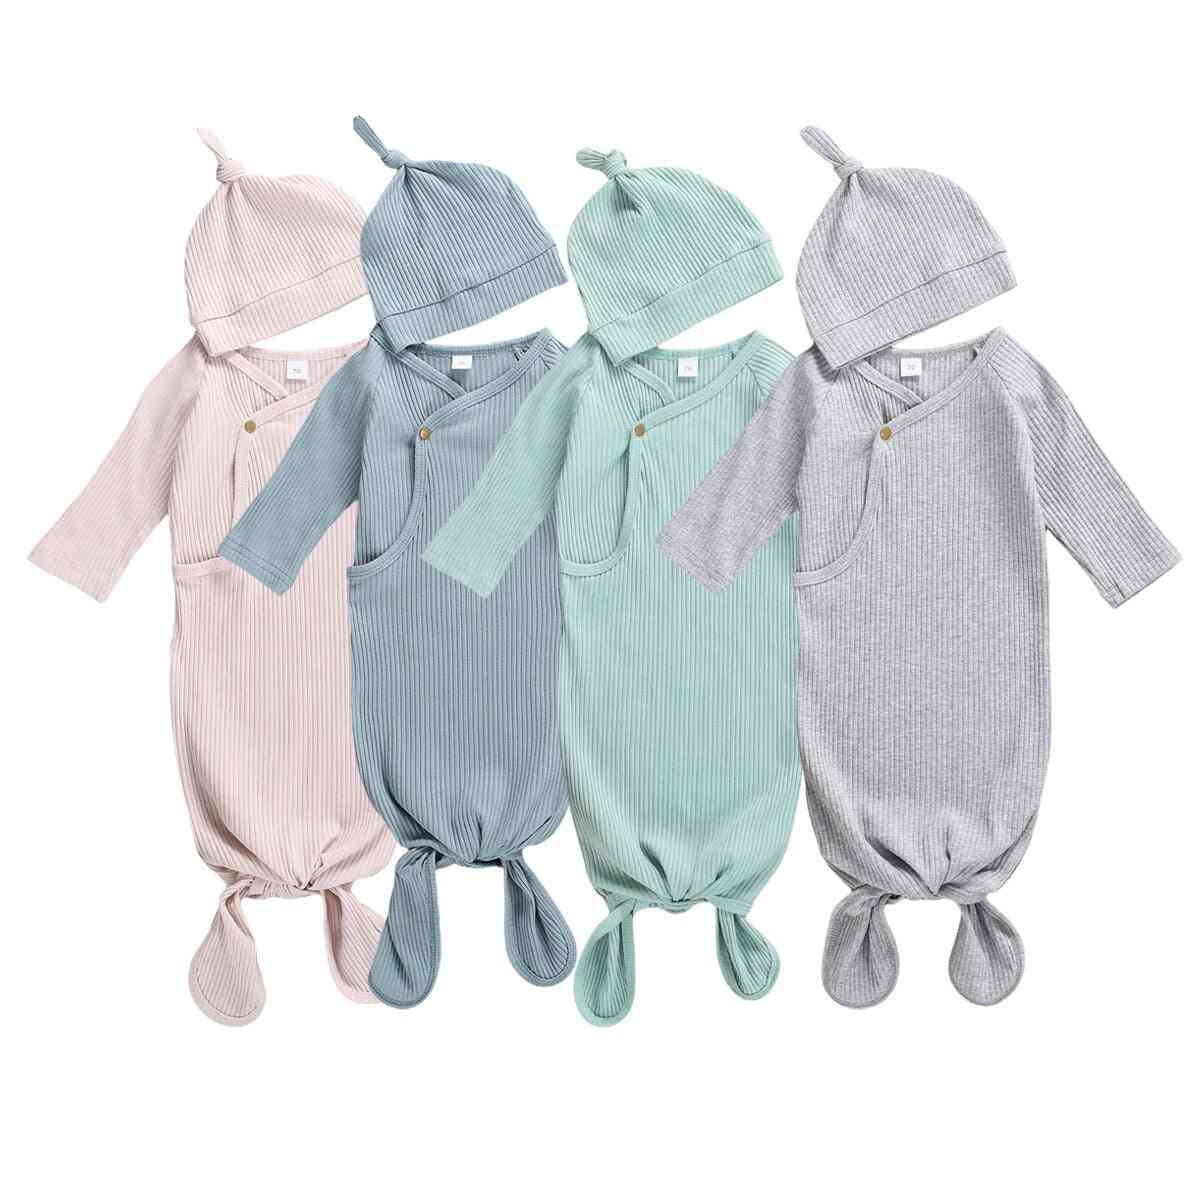 Newborn Baby Girl Solid Knitted Swaddle Wrap Blanket Sleeping Bag+hat Set